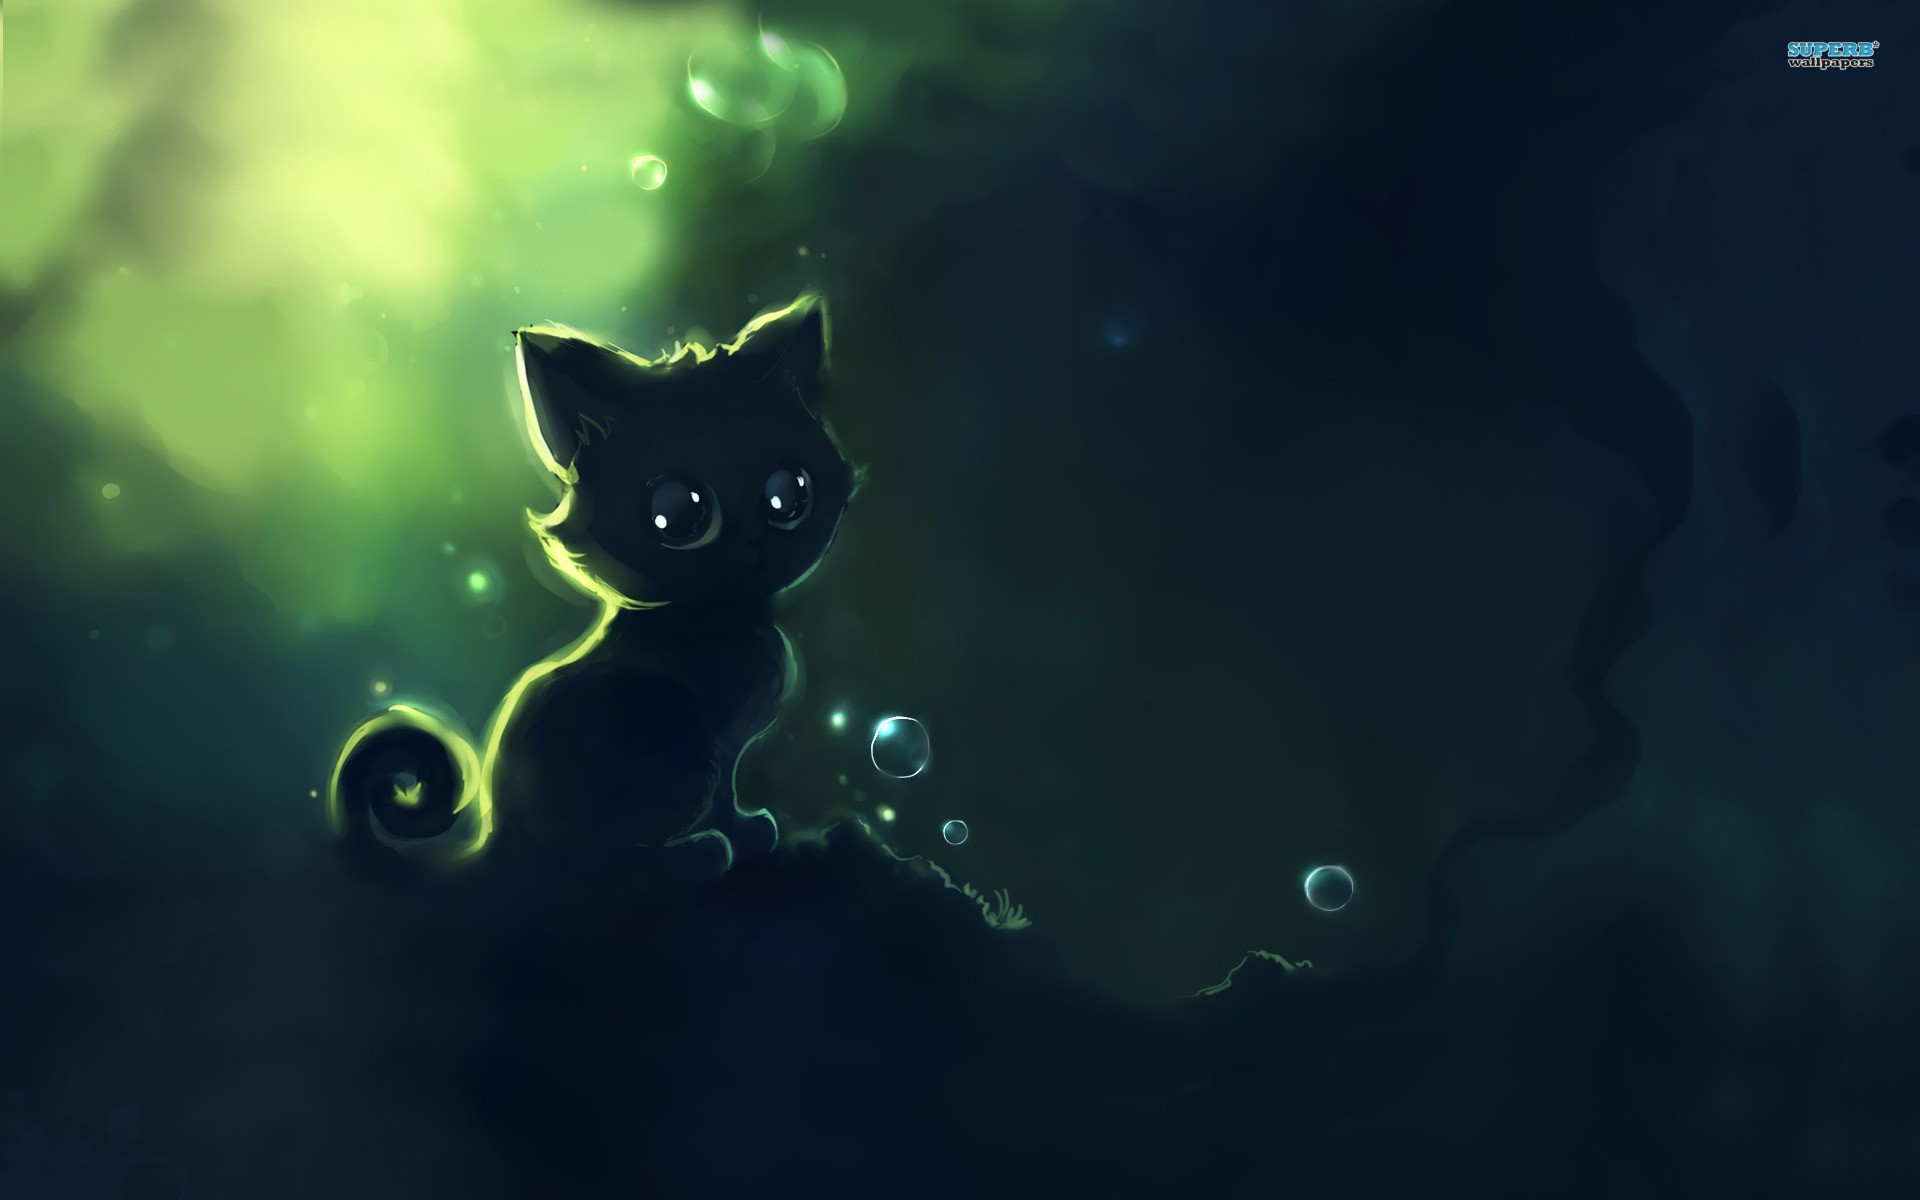 abstract cats apofiss wallpaper 1920x1200 54833